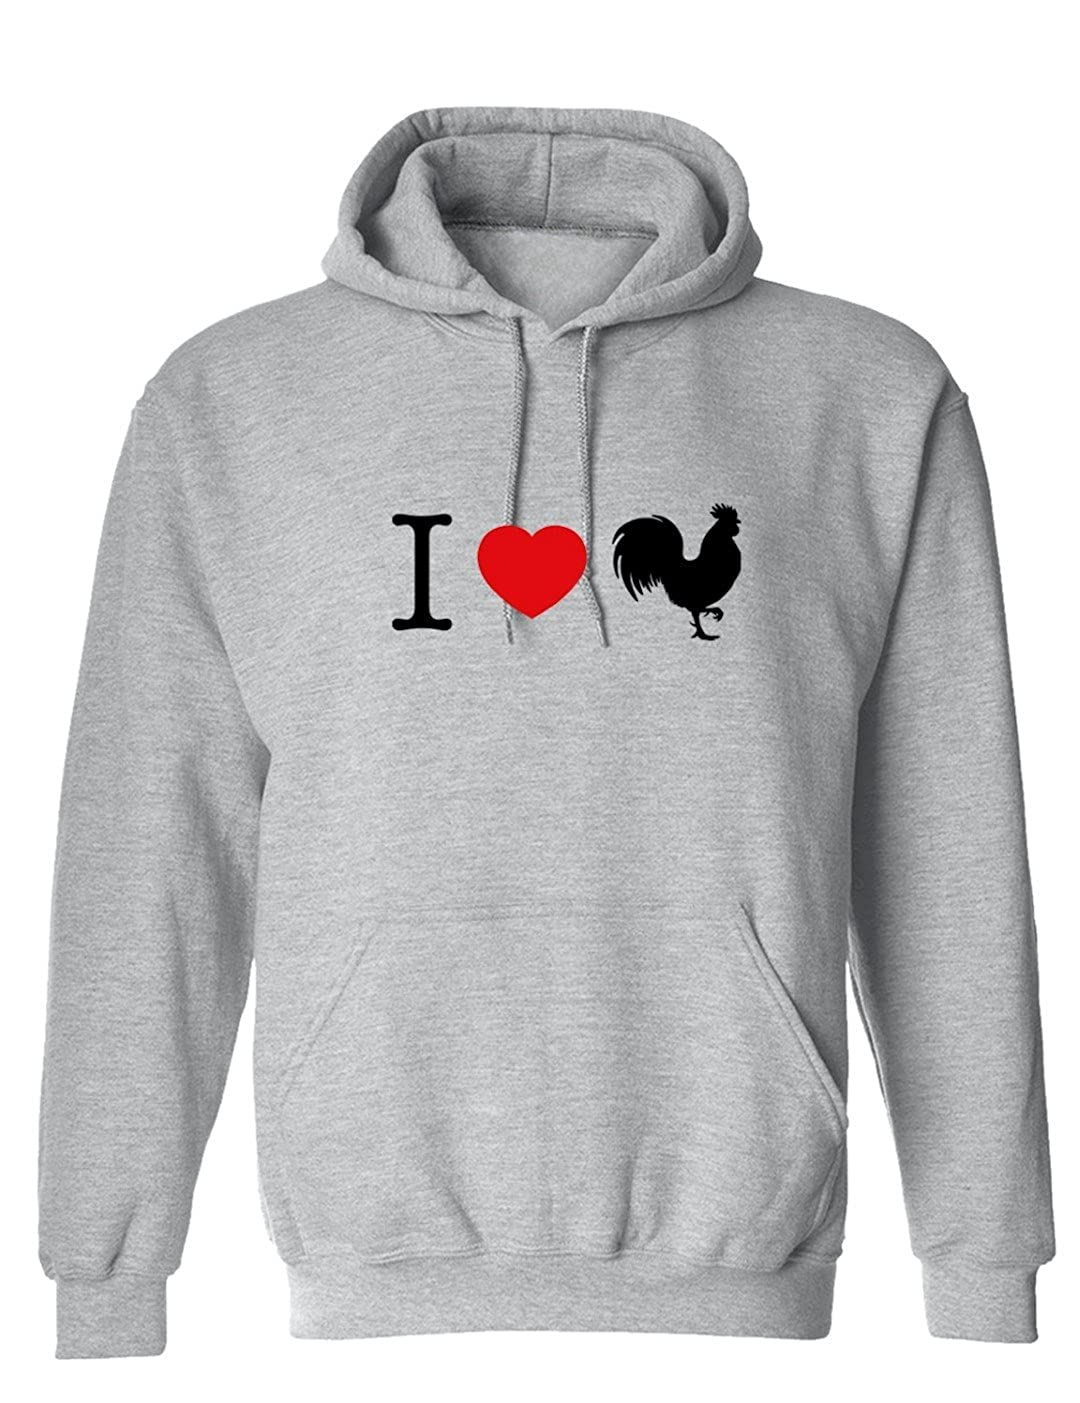 Funny I Love Chicks Rooster Graphic Design Hoodie